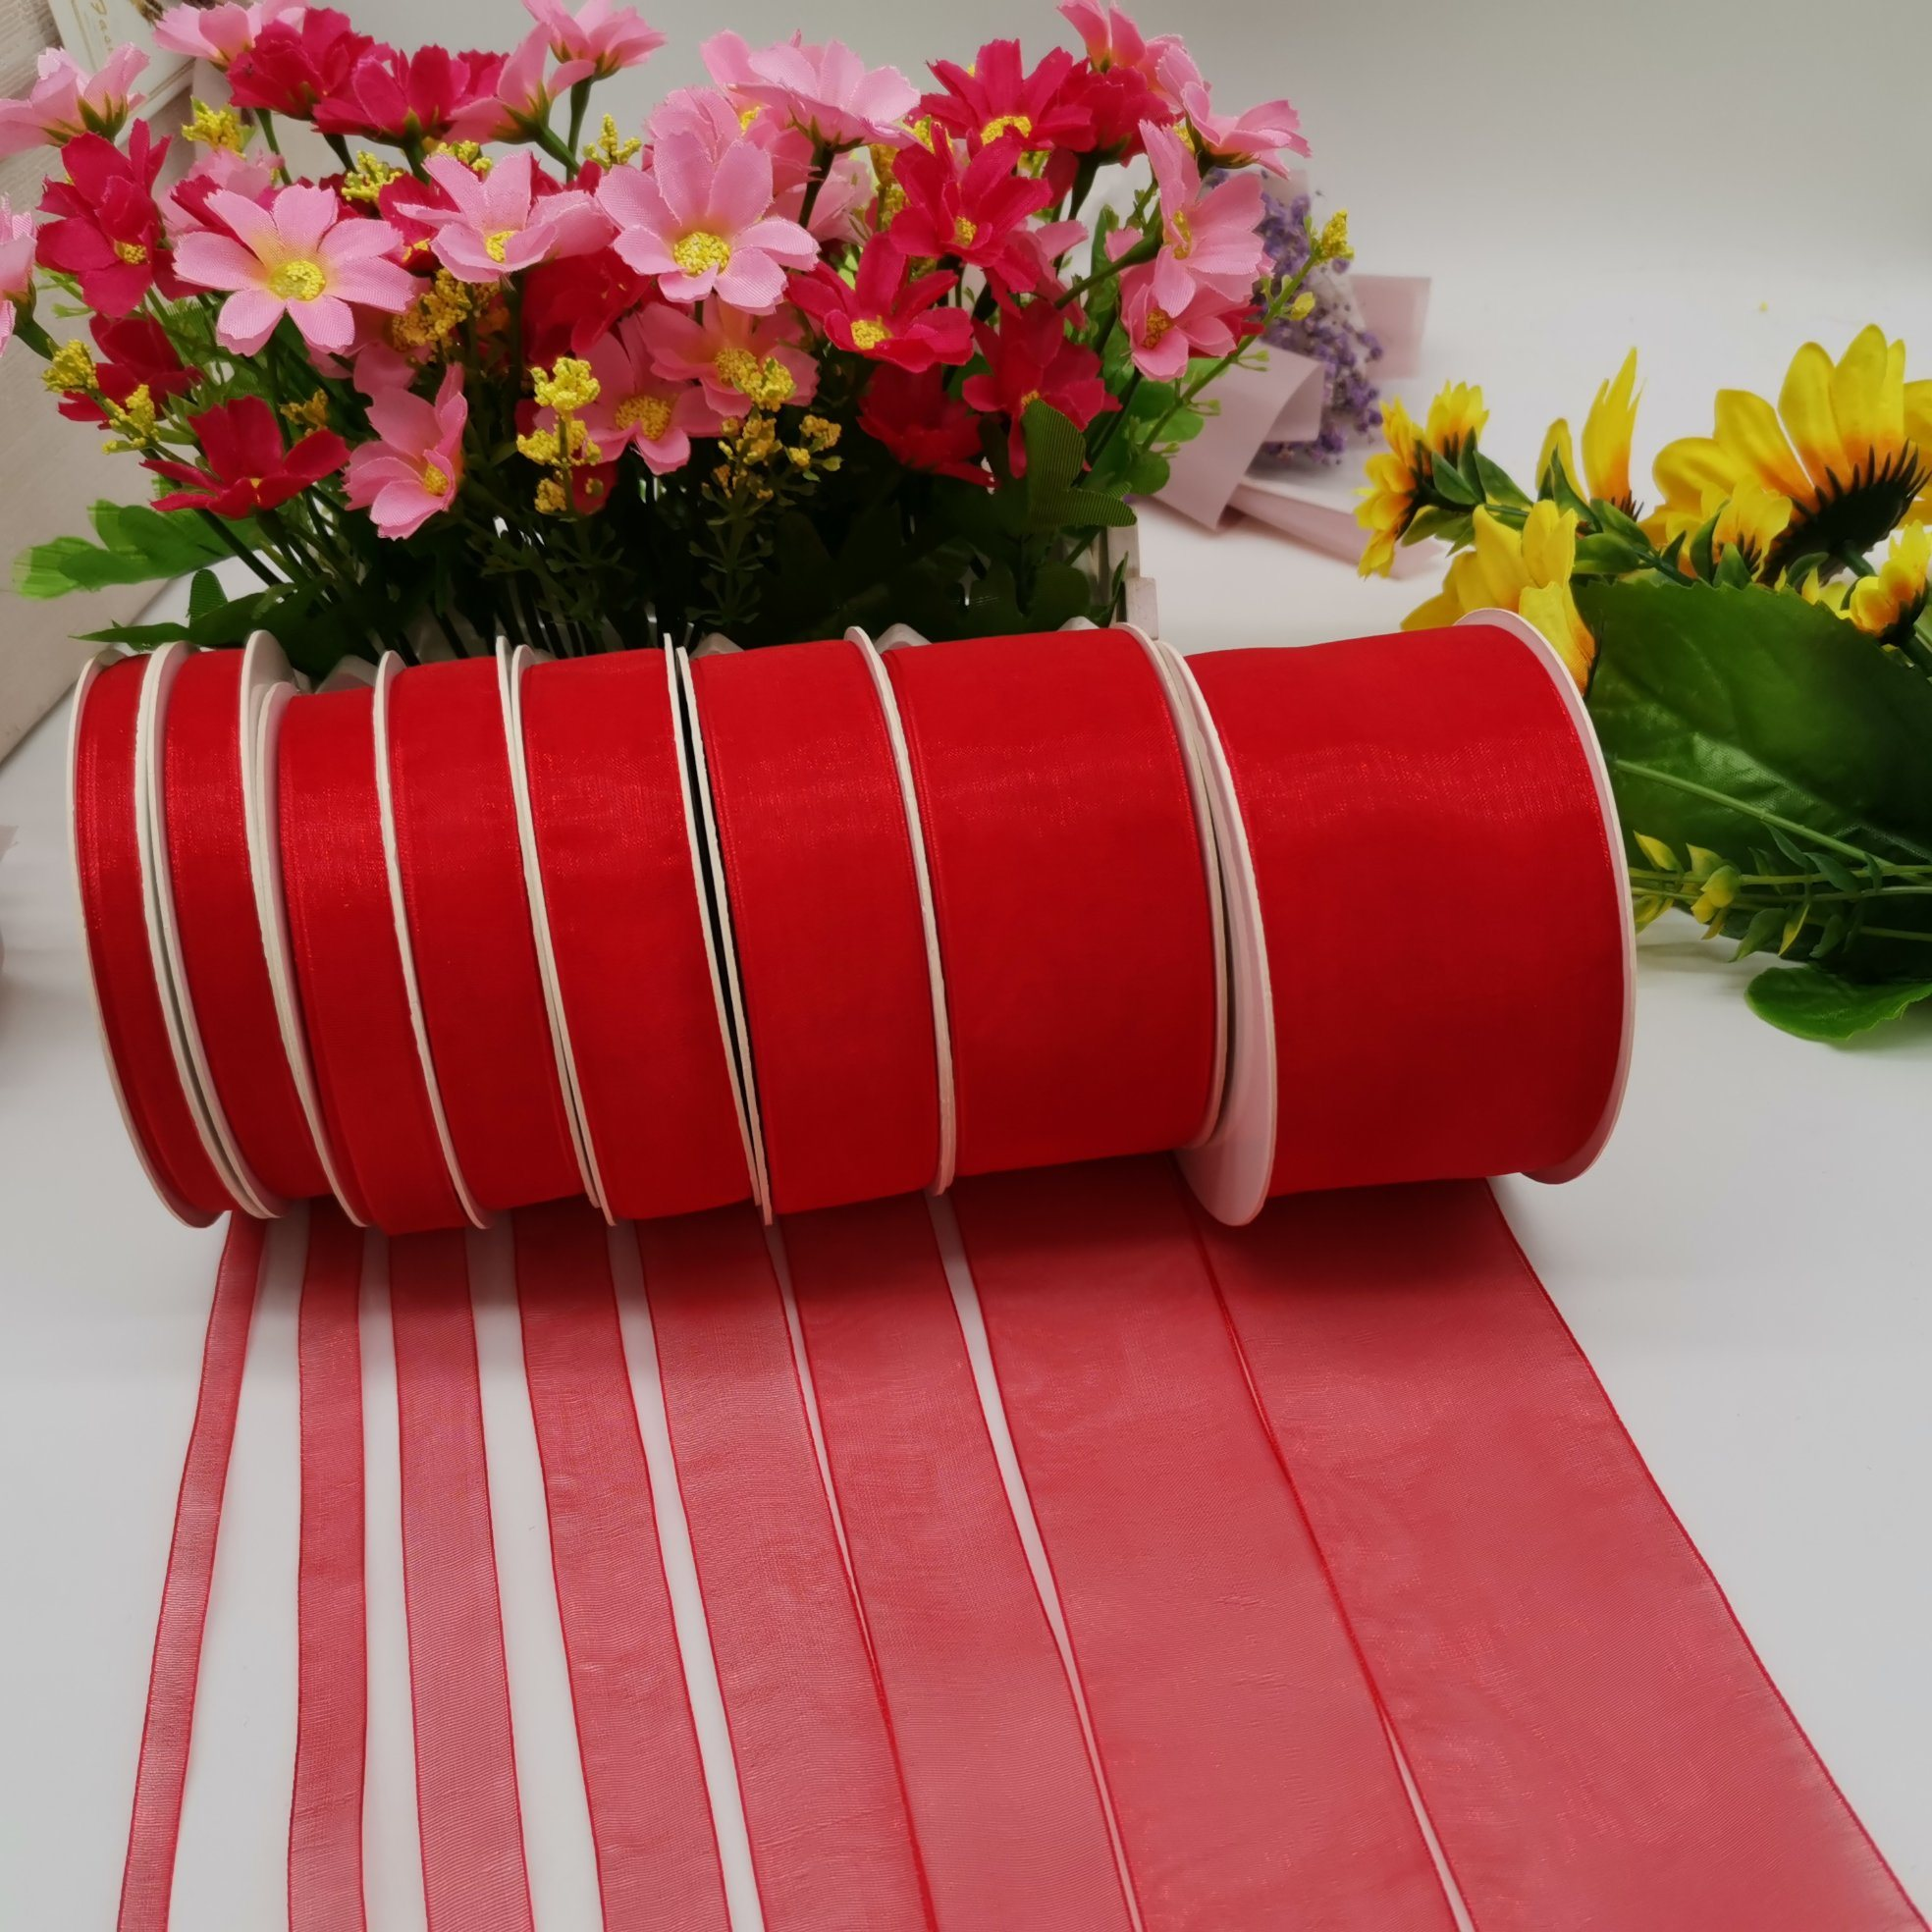 1 INCH RED Double Faced Satin Ribbon 40 Meters Crafts Gift Wrap Floristry